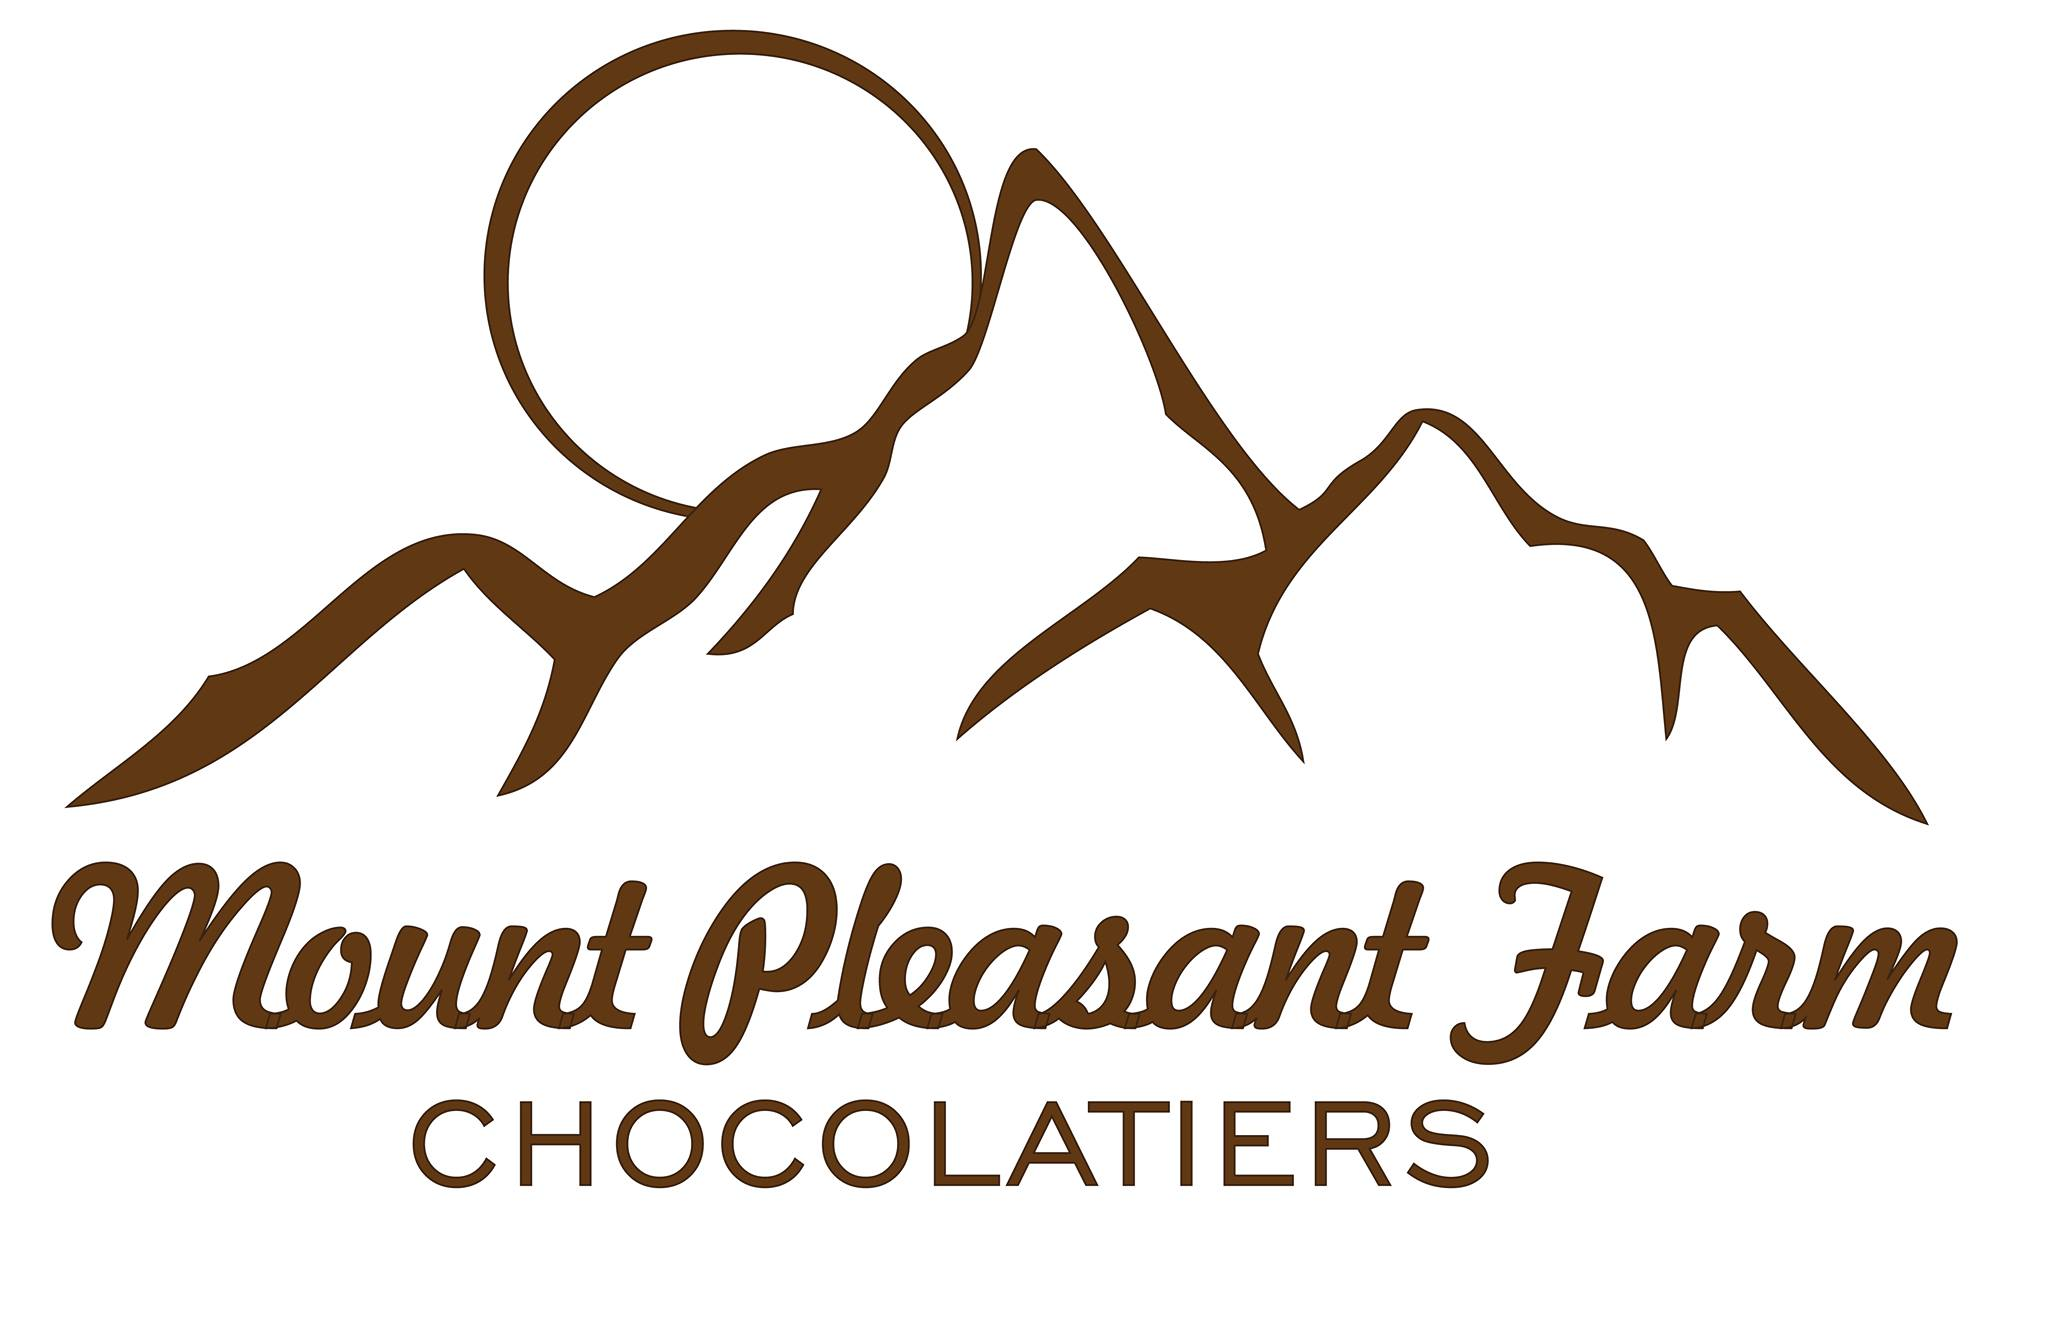 Mount Pleasant Chocolatiers